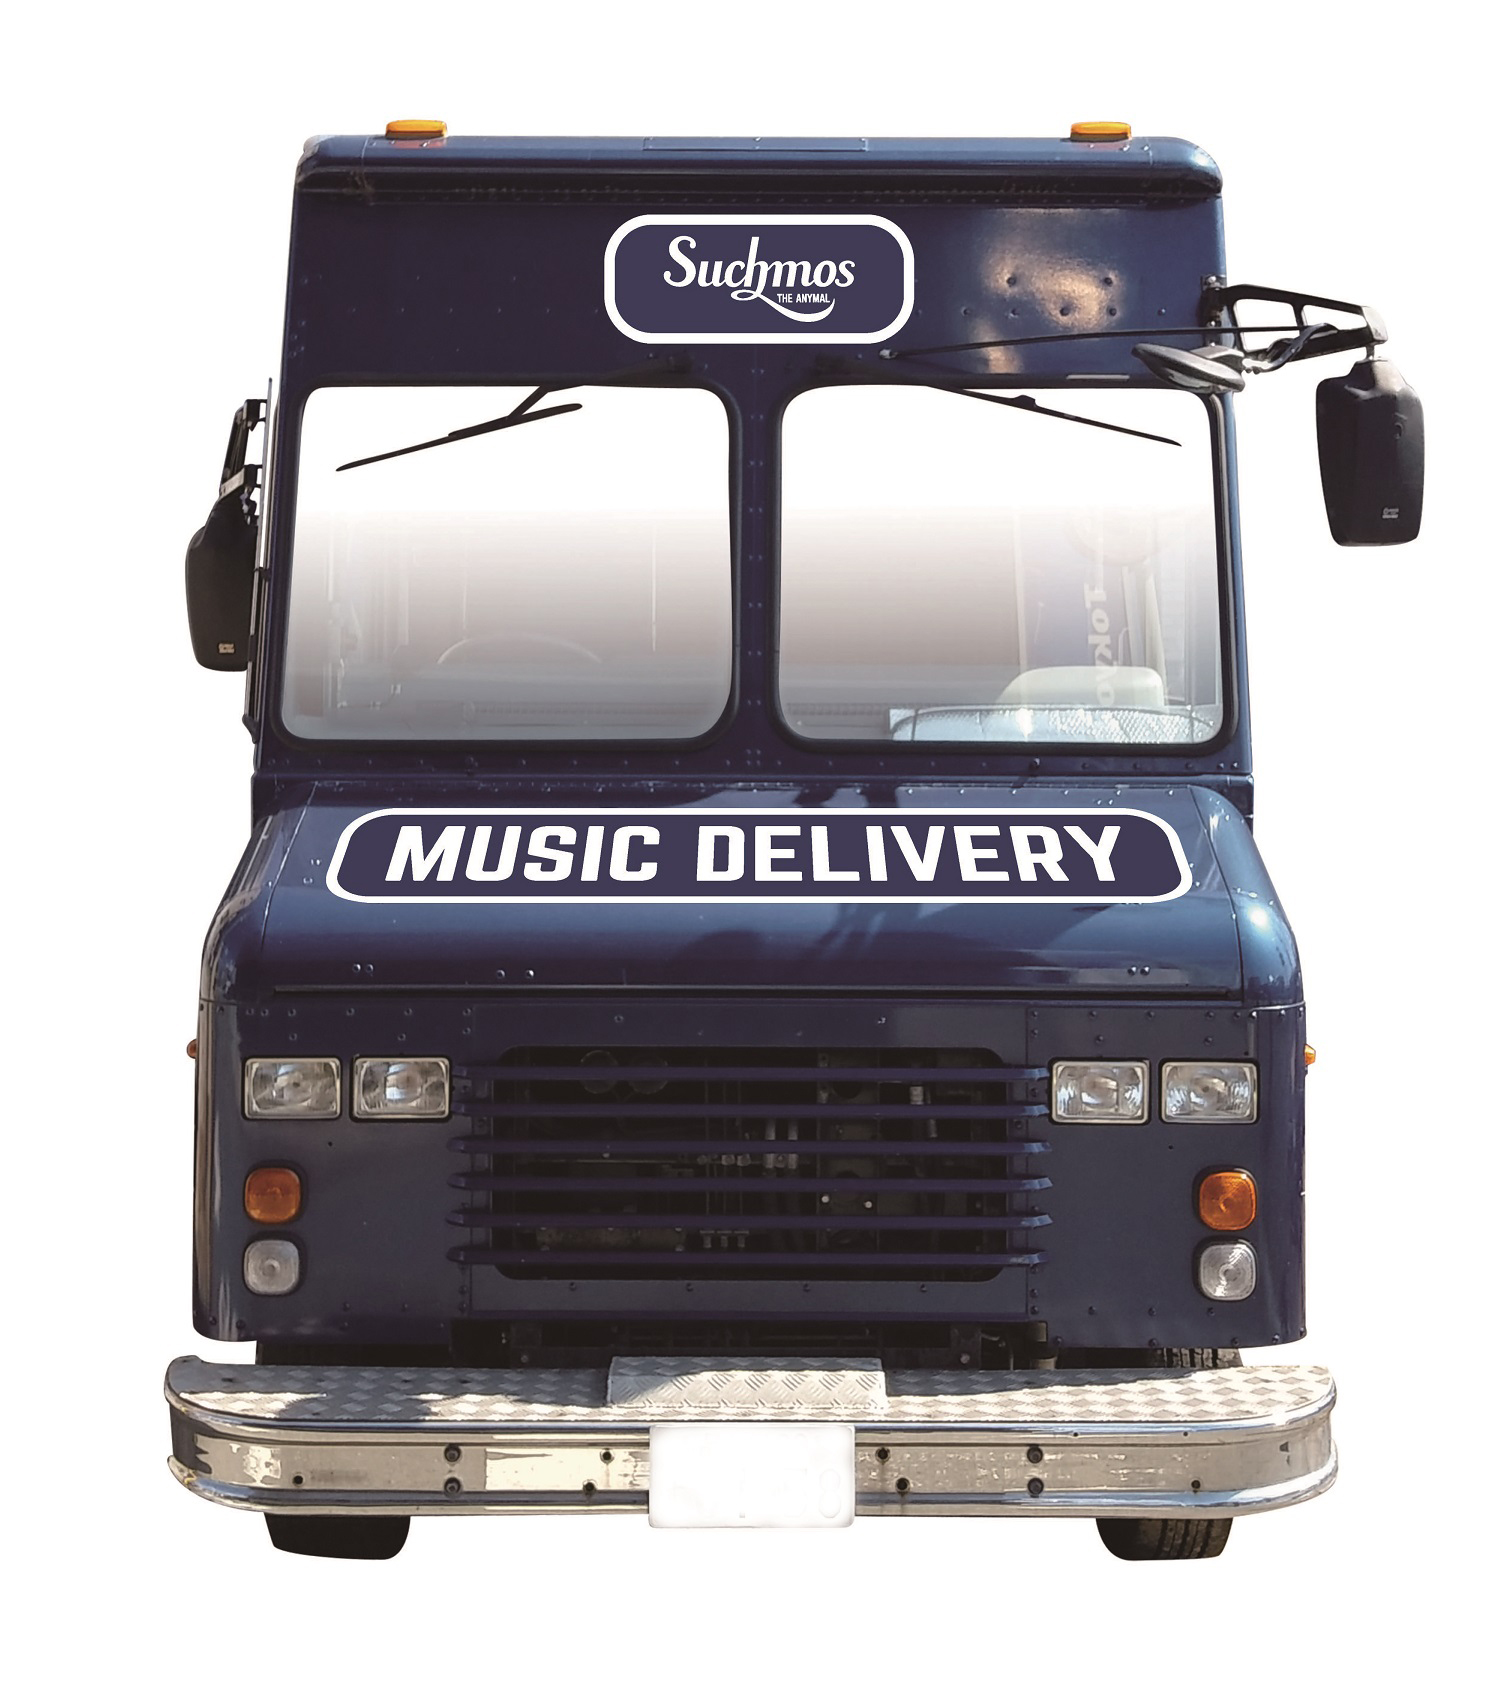 Suchmos MUSIC DELIVERY トラック